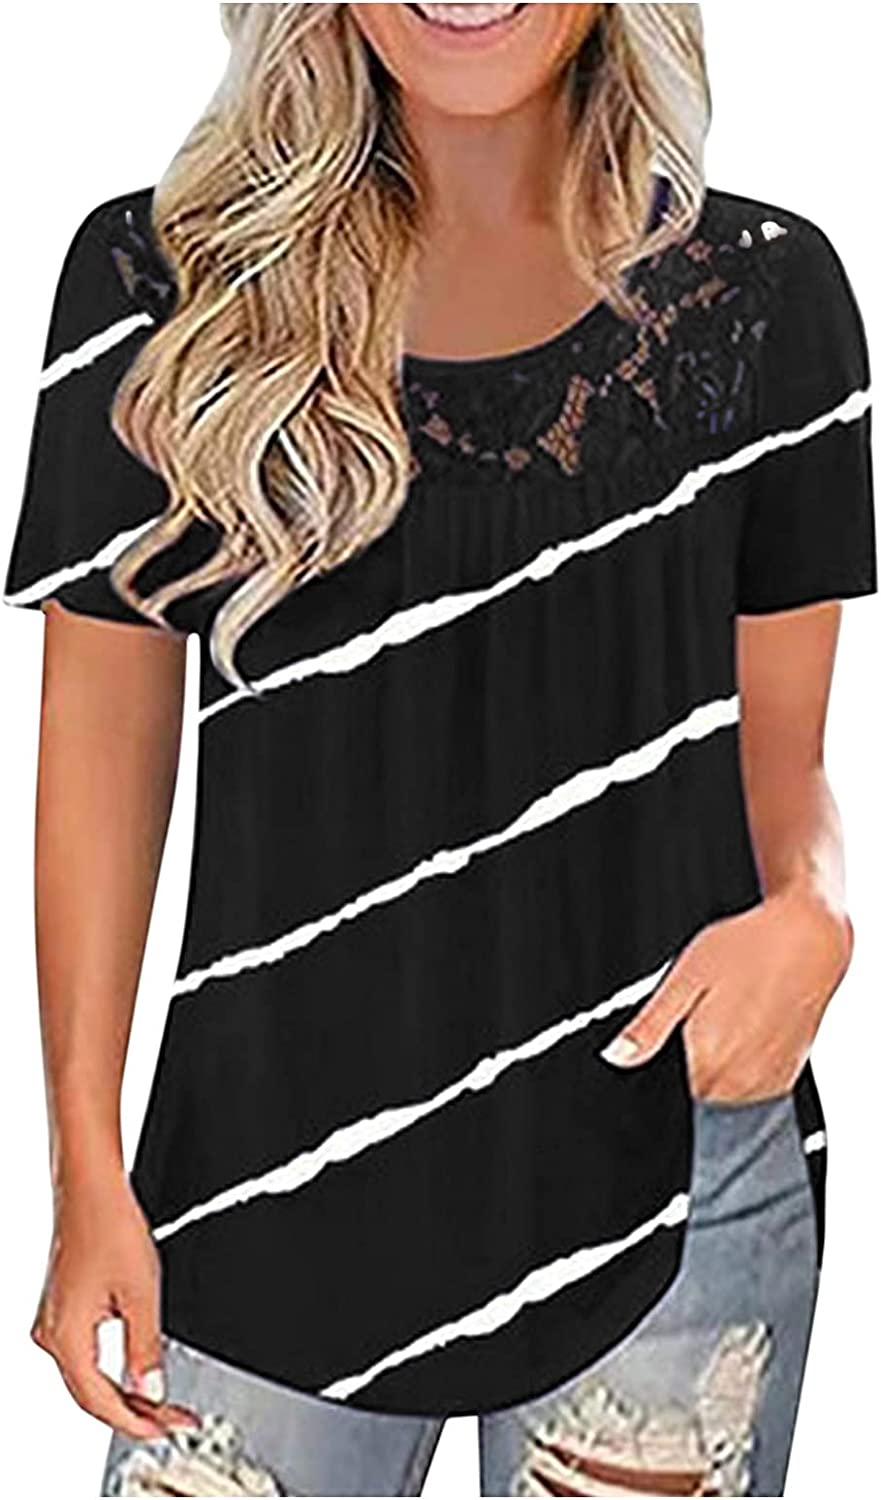 AODONG Short Sleeve Tops for Women, Women's Summer Tops Plus Size Lace Pleated Shirts Casual Loose Blouses Tops Tunics